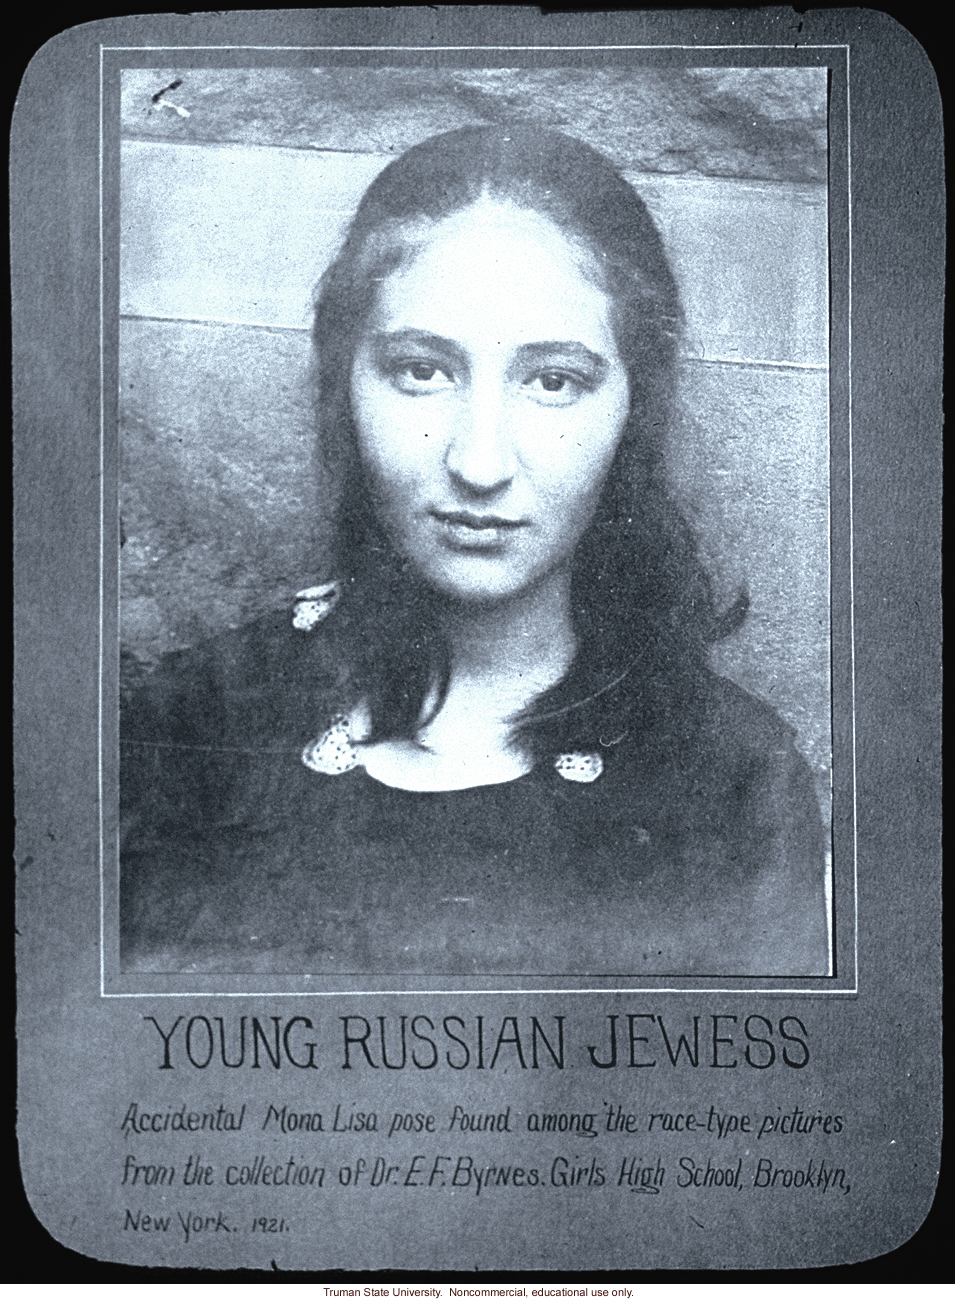 &quote;Young Russian Jewess.  Accidental Mona Lisa pose found among the race-type pictures,&quote; to illustrate racial types.